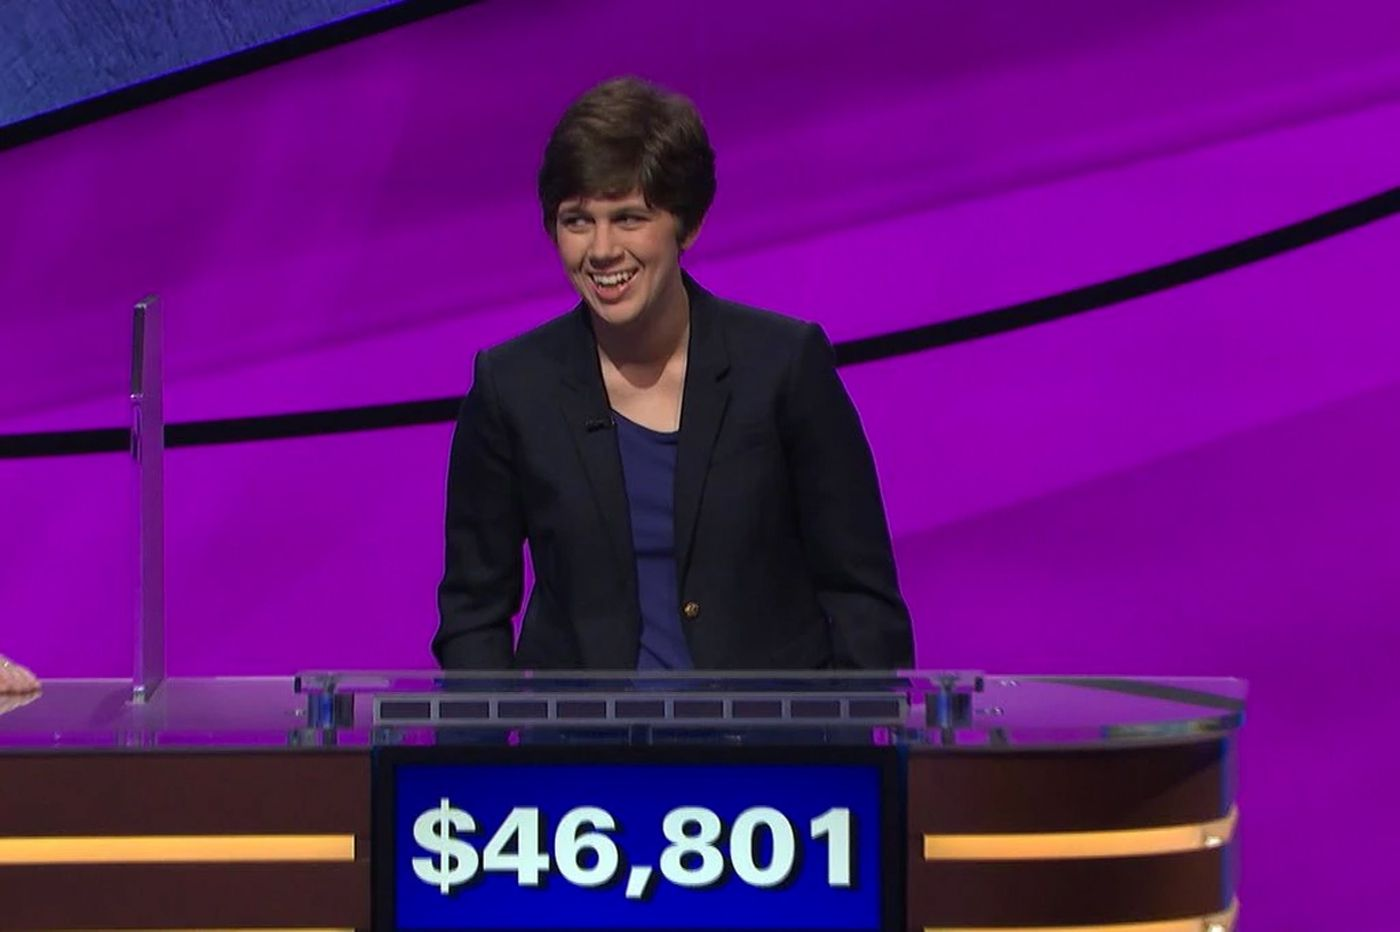 New 'Jeopardy!' champ Emma Boettcher is a Philly-area native who auditioned 4 times